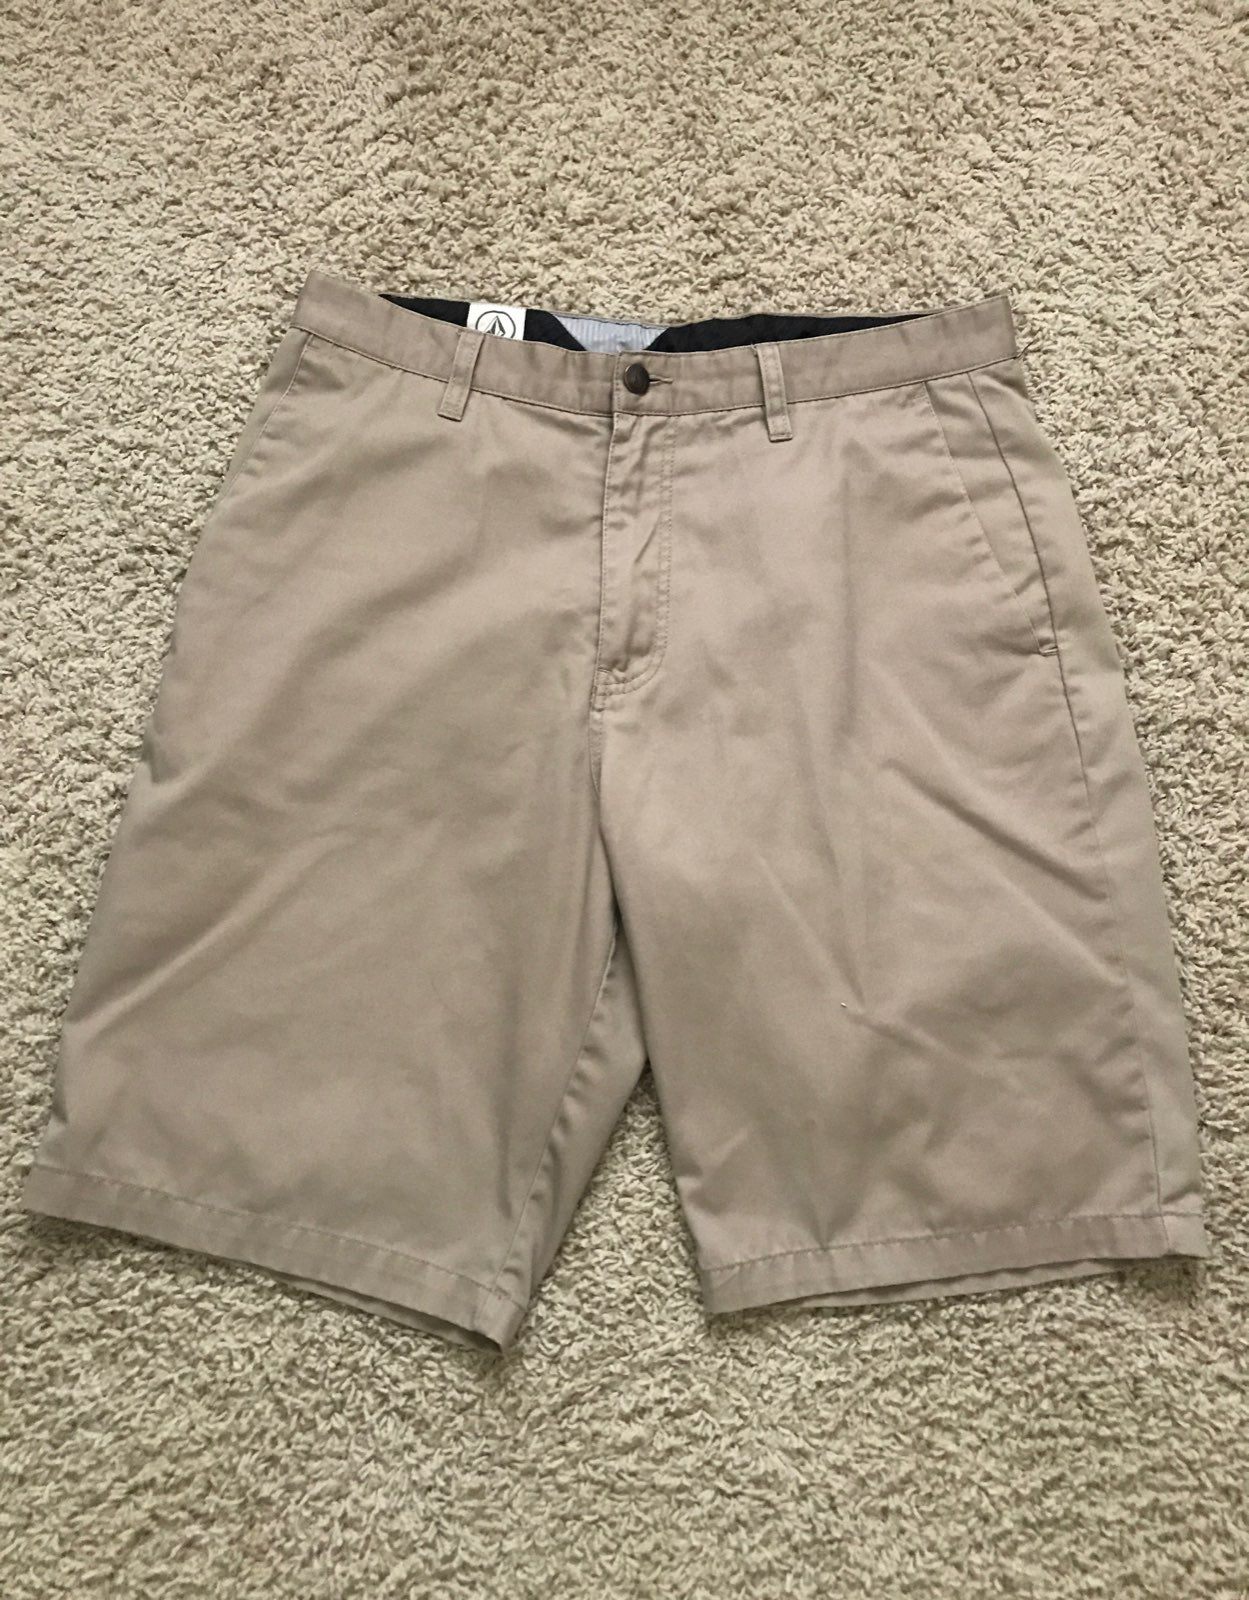 Volcom Mens Khaki Shorts (32)